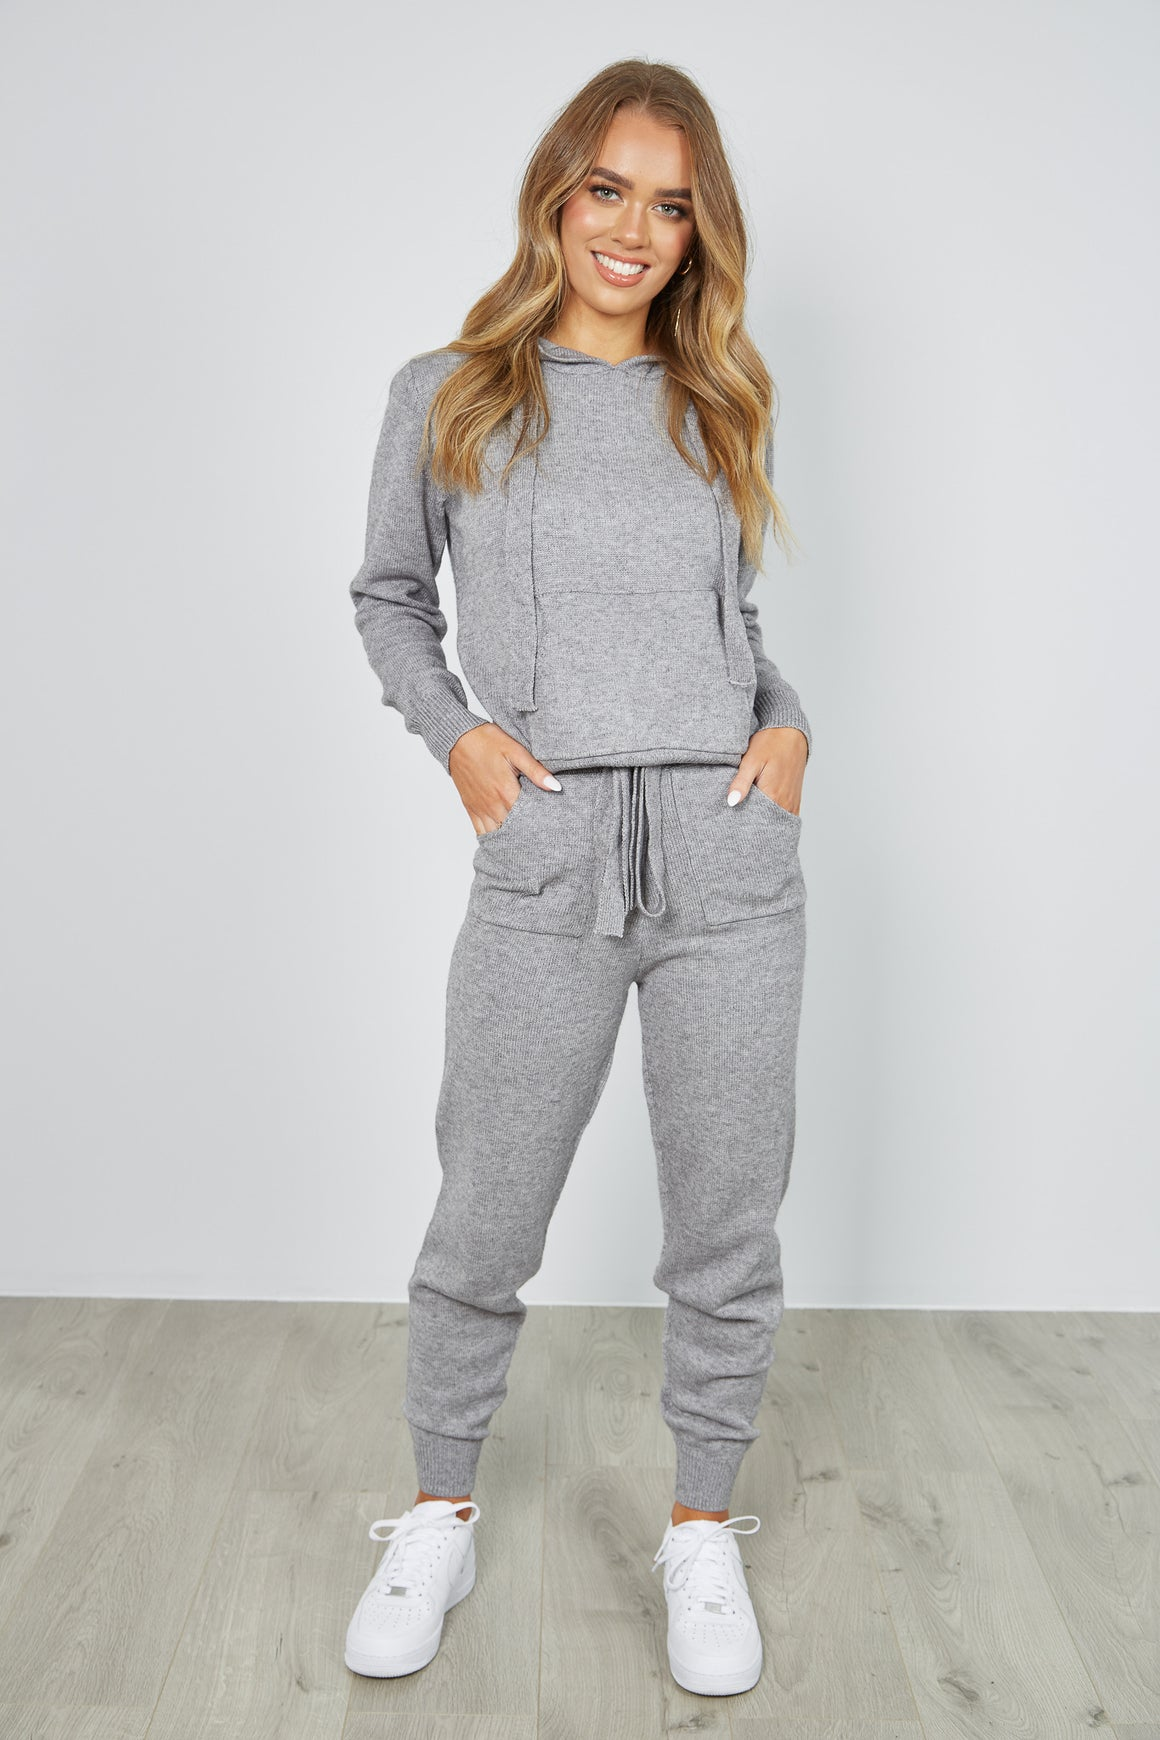 JACOB KNIT SET - GREY